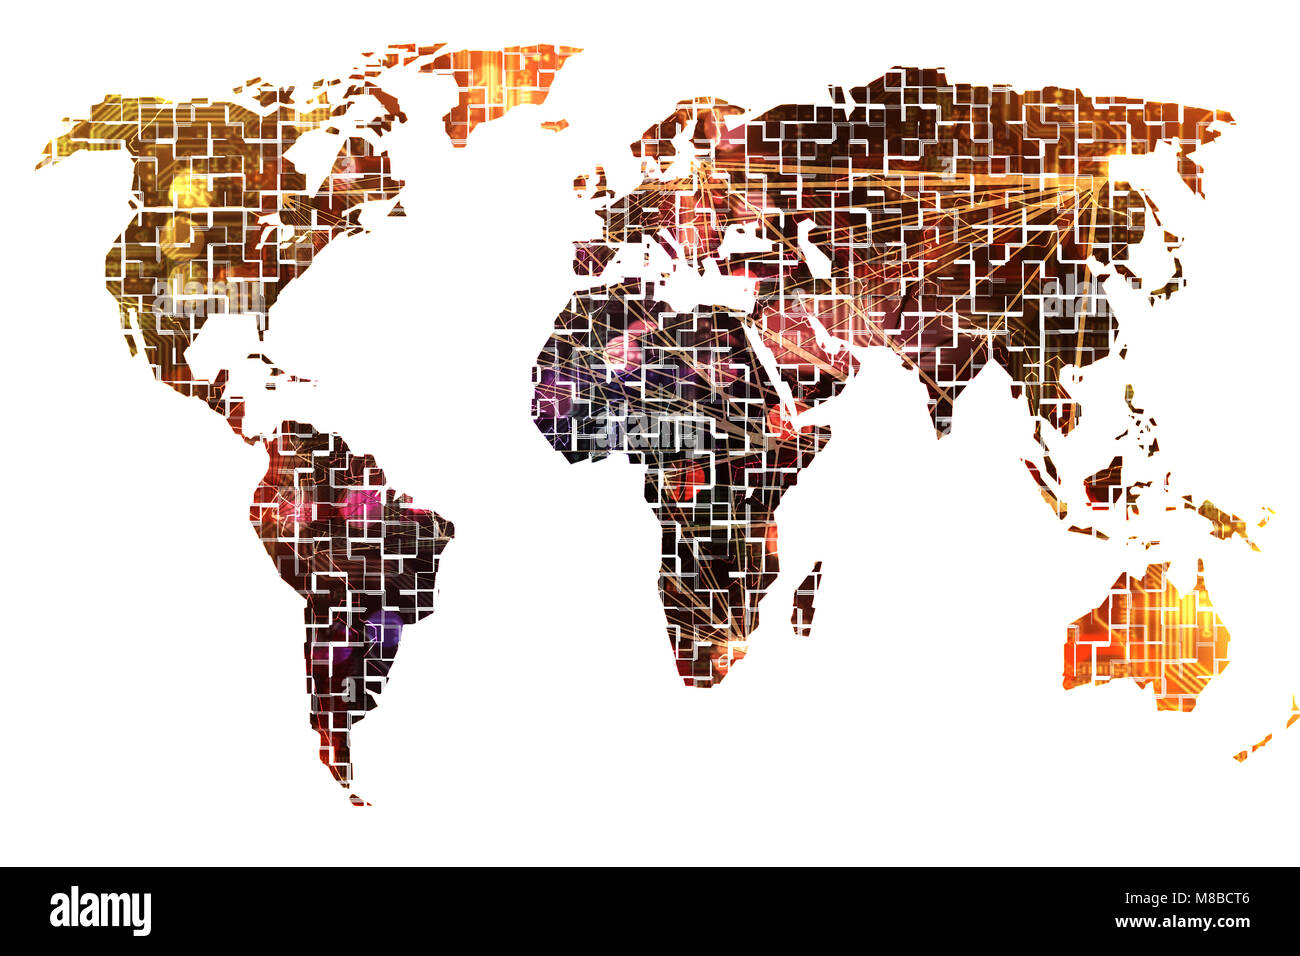 Digital world map with all continents - Stock Image